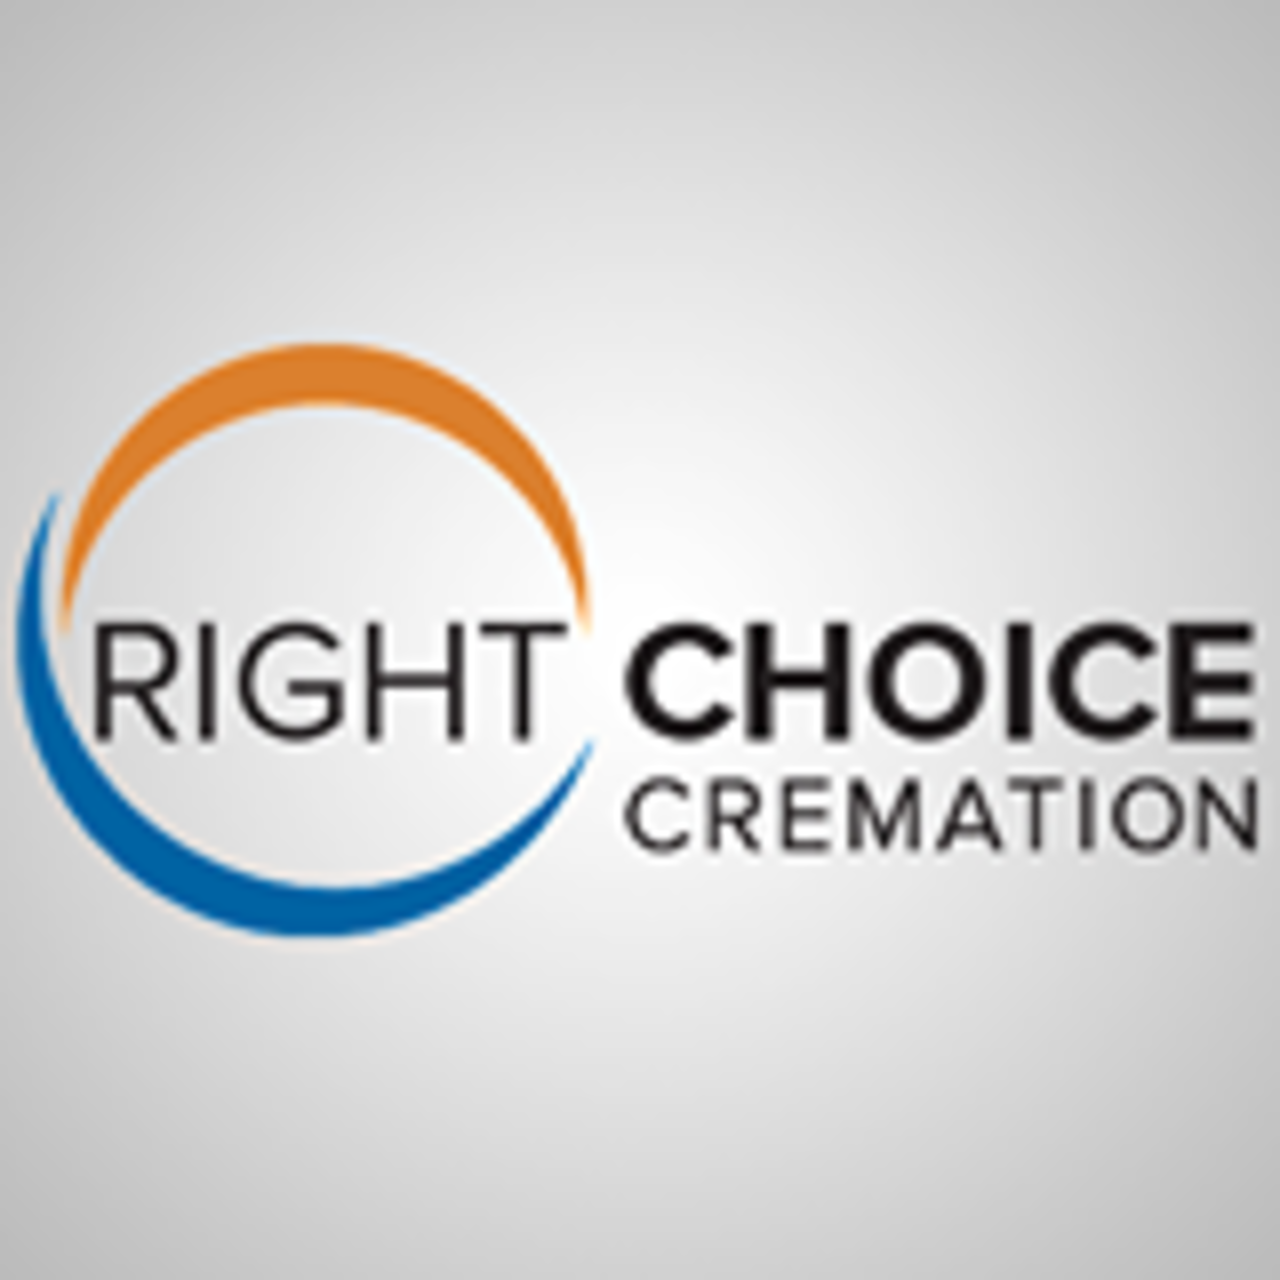 Right Choice Cremation - Ocala - Services - Funeral Services in Ocala FL